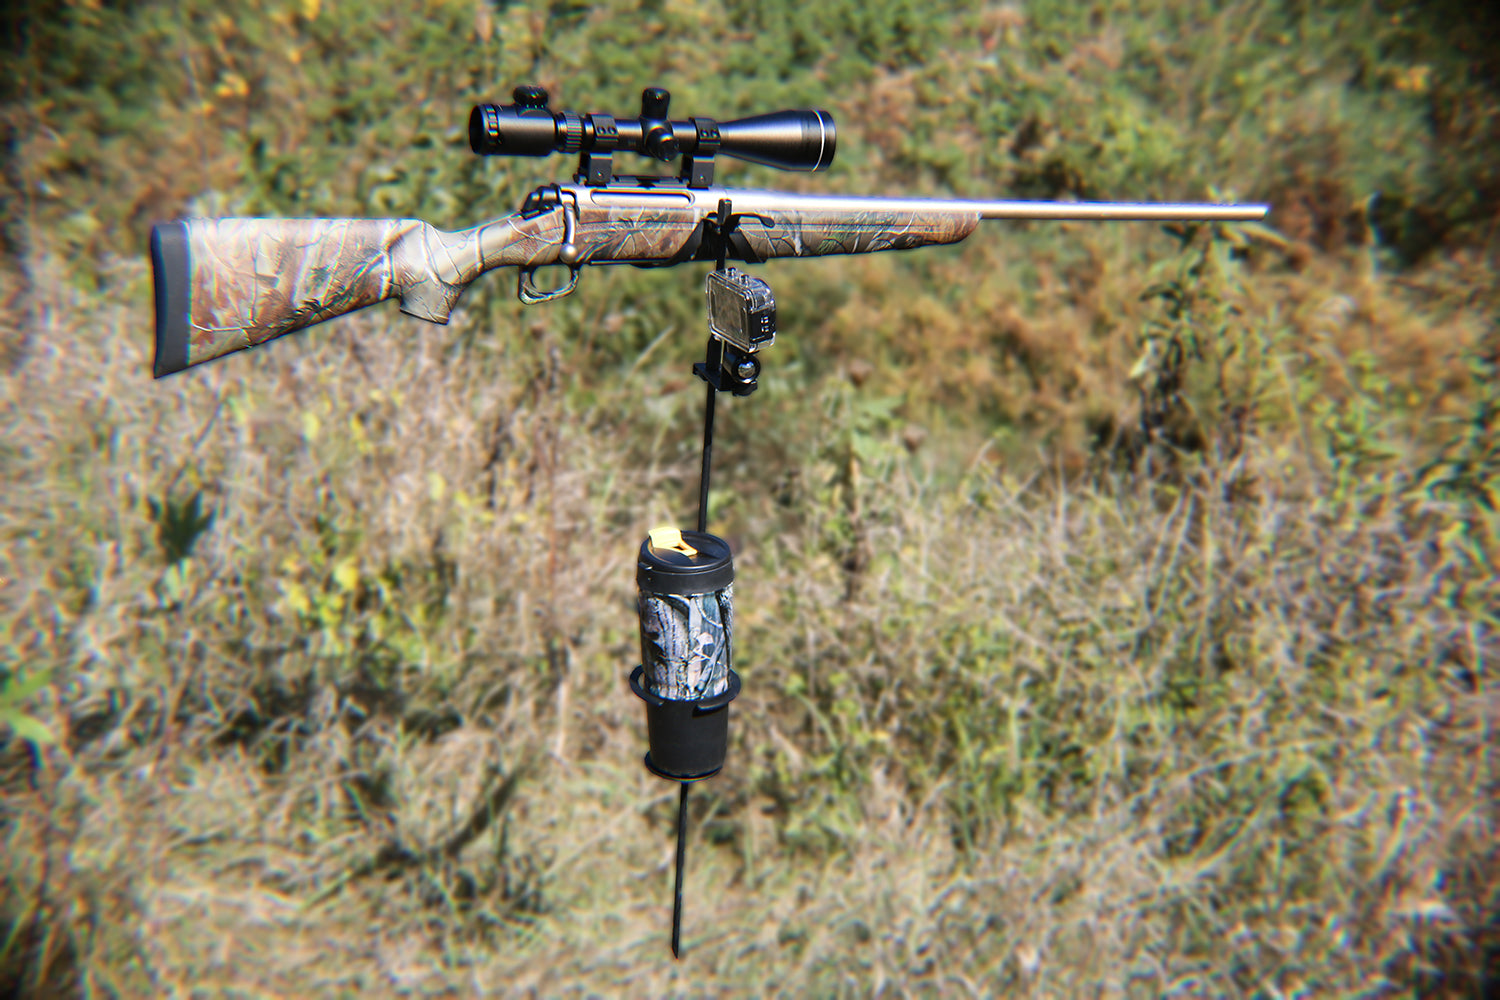 Ready - Aimed - Rest!  Film your hunts while keeping your equipment out of harms way!